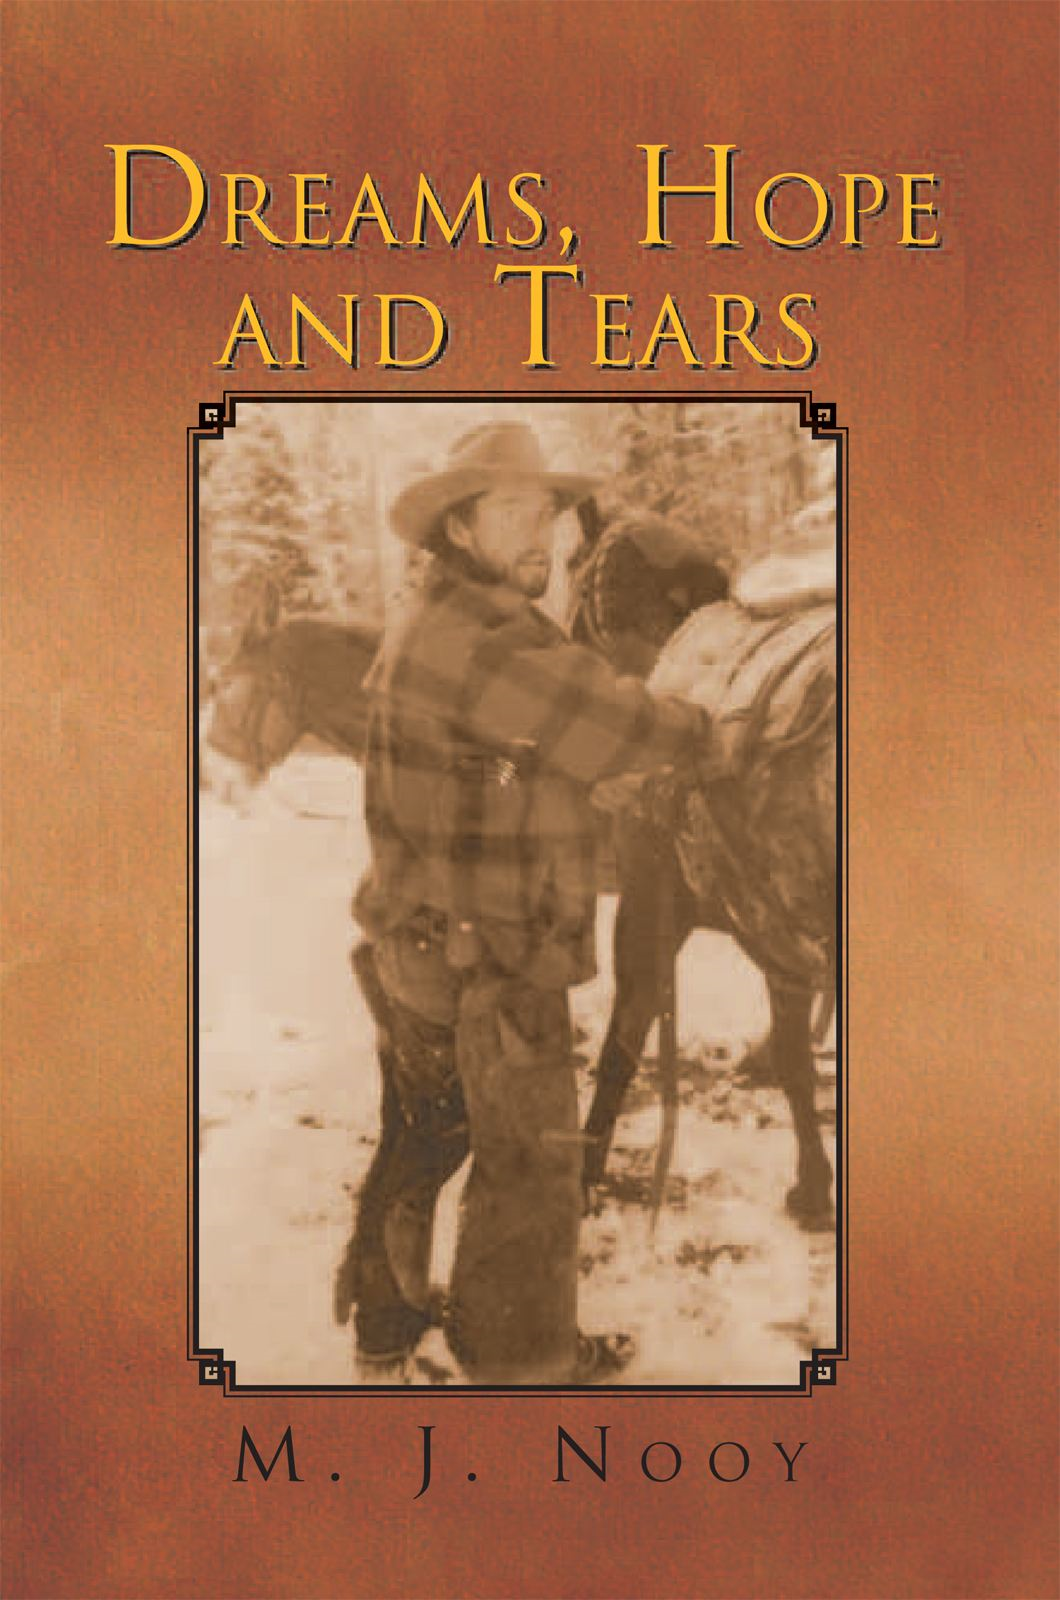 Dreams, Hope and Tears By: M. J. Nooy